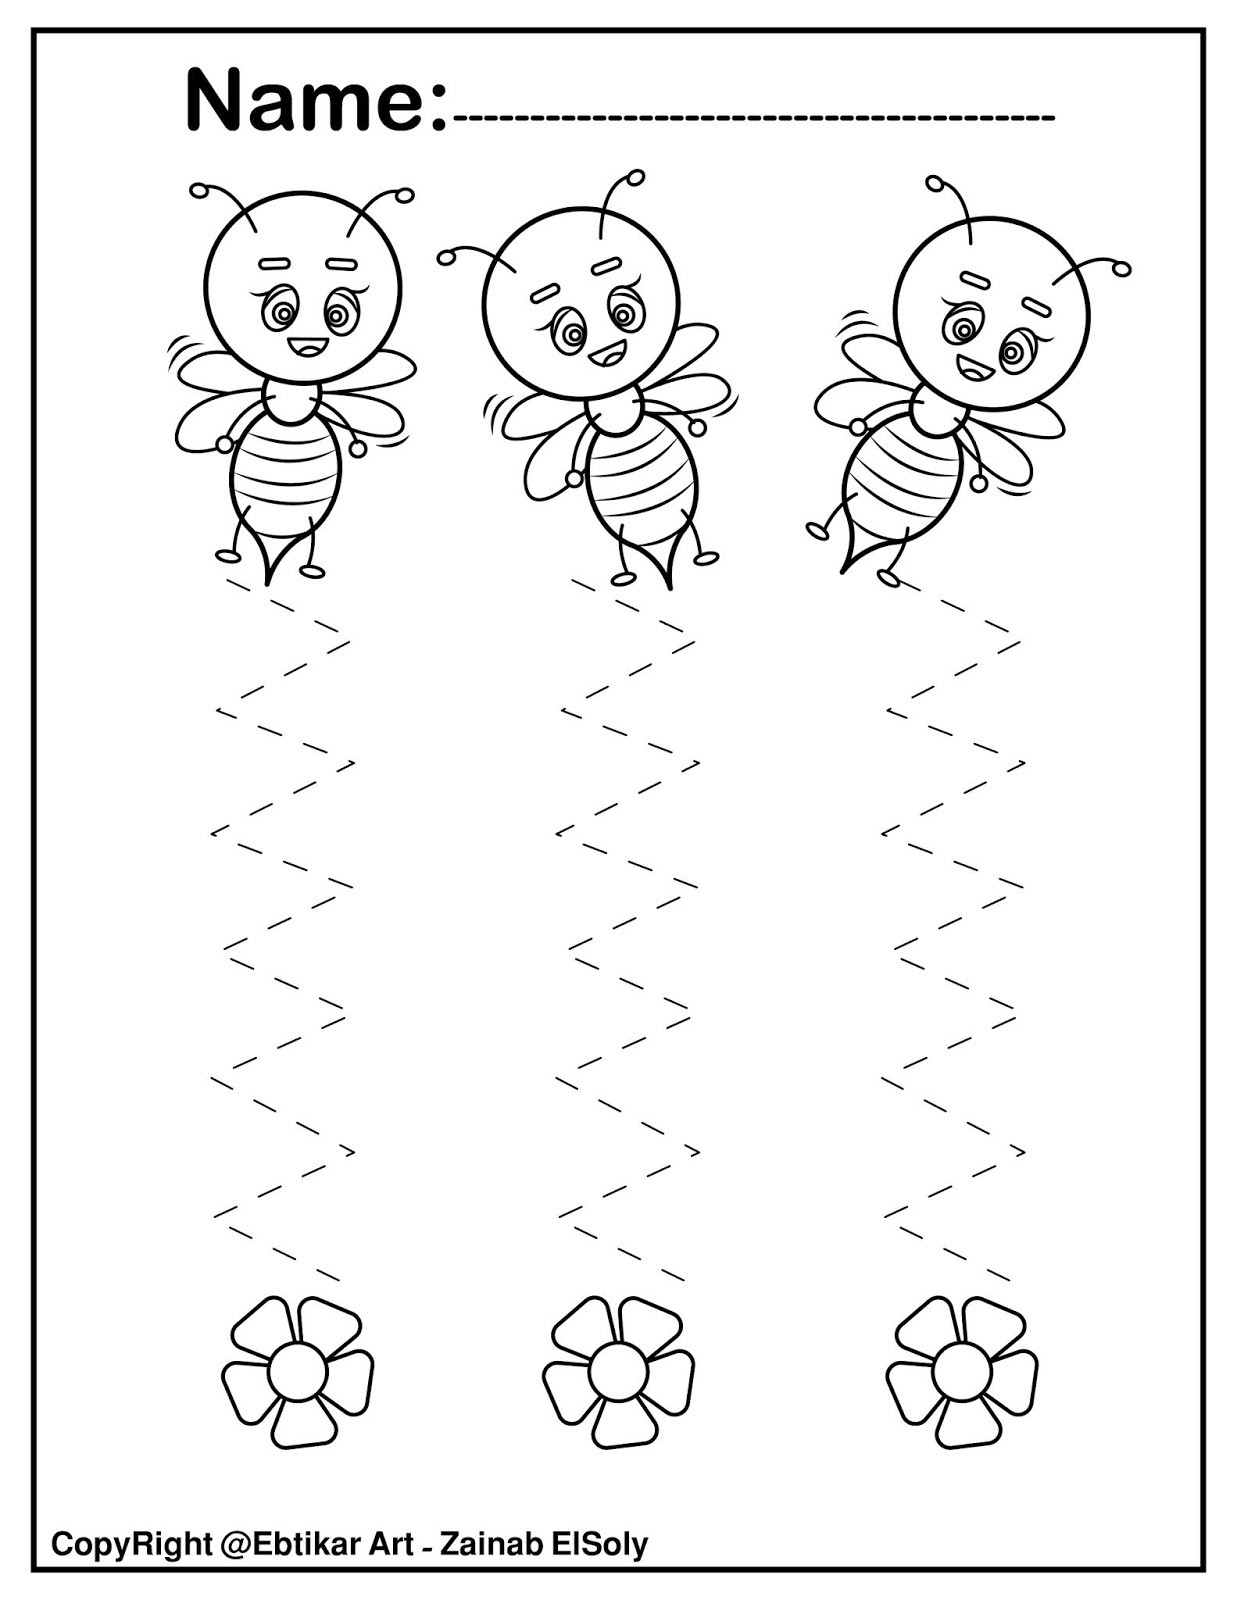 Pictogram Puzzles Printable Set Fine Motor Tracing Activity More Less Worksheets